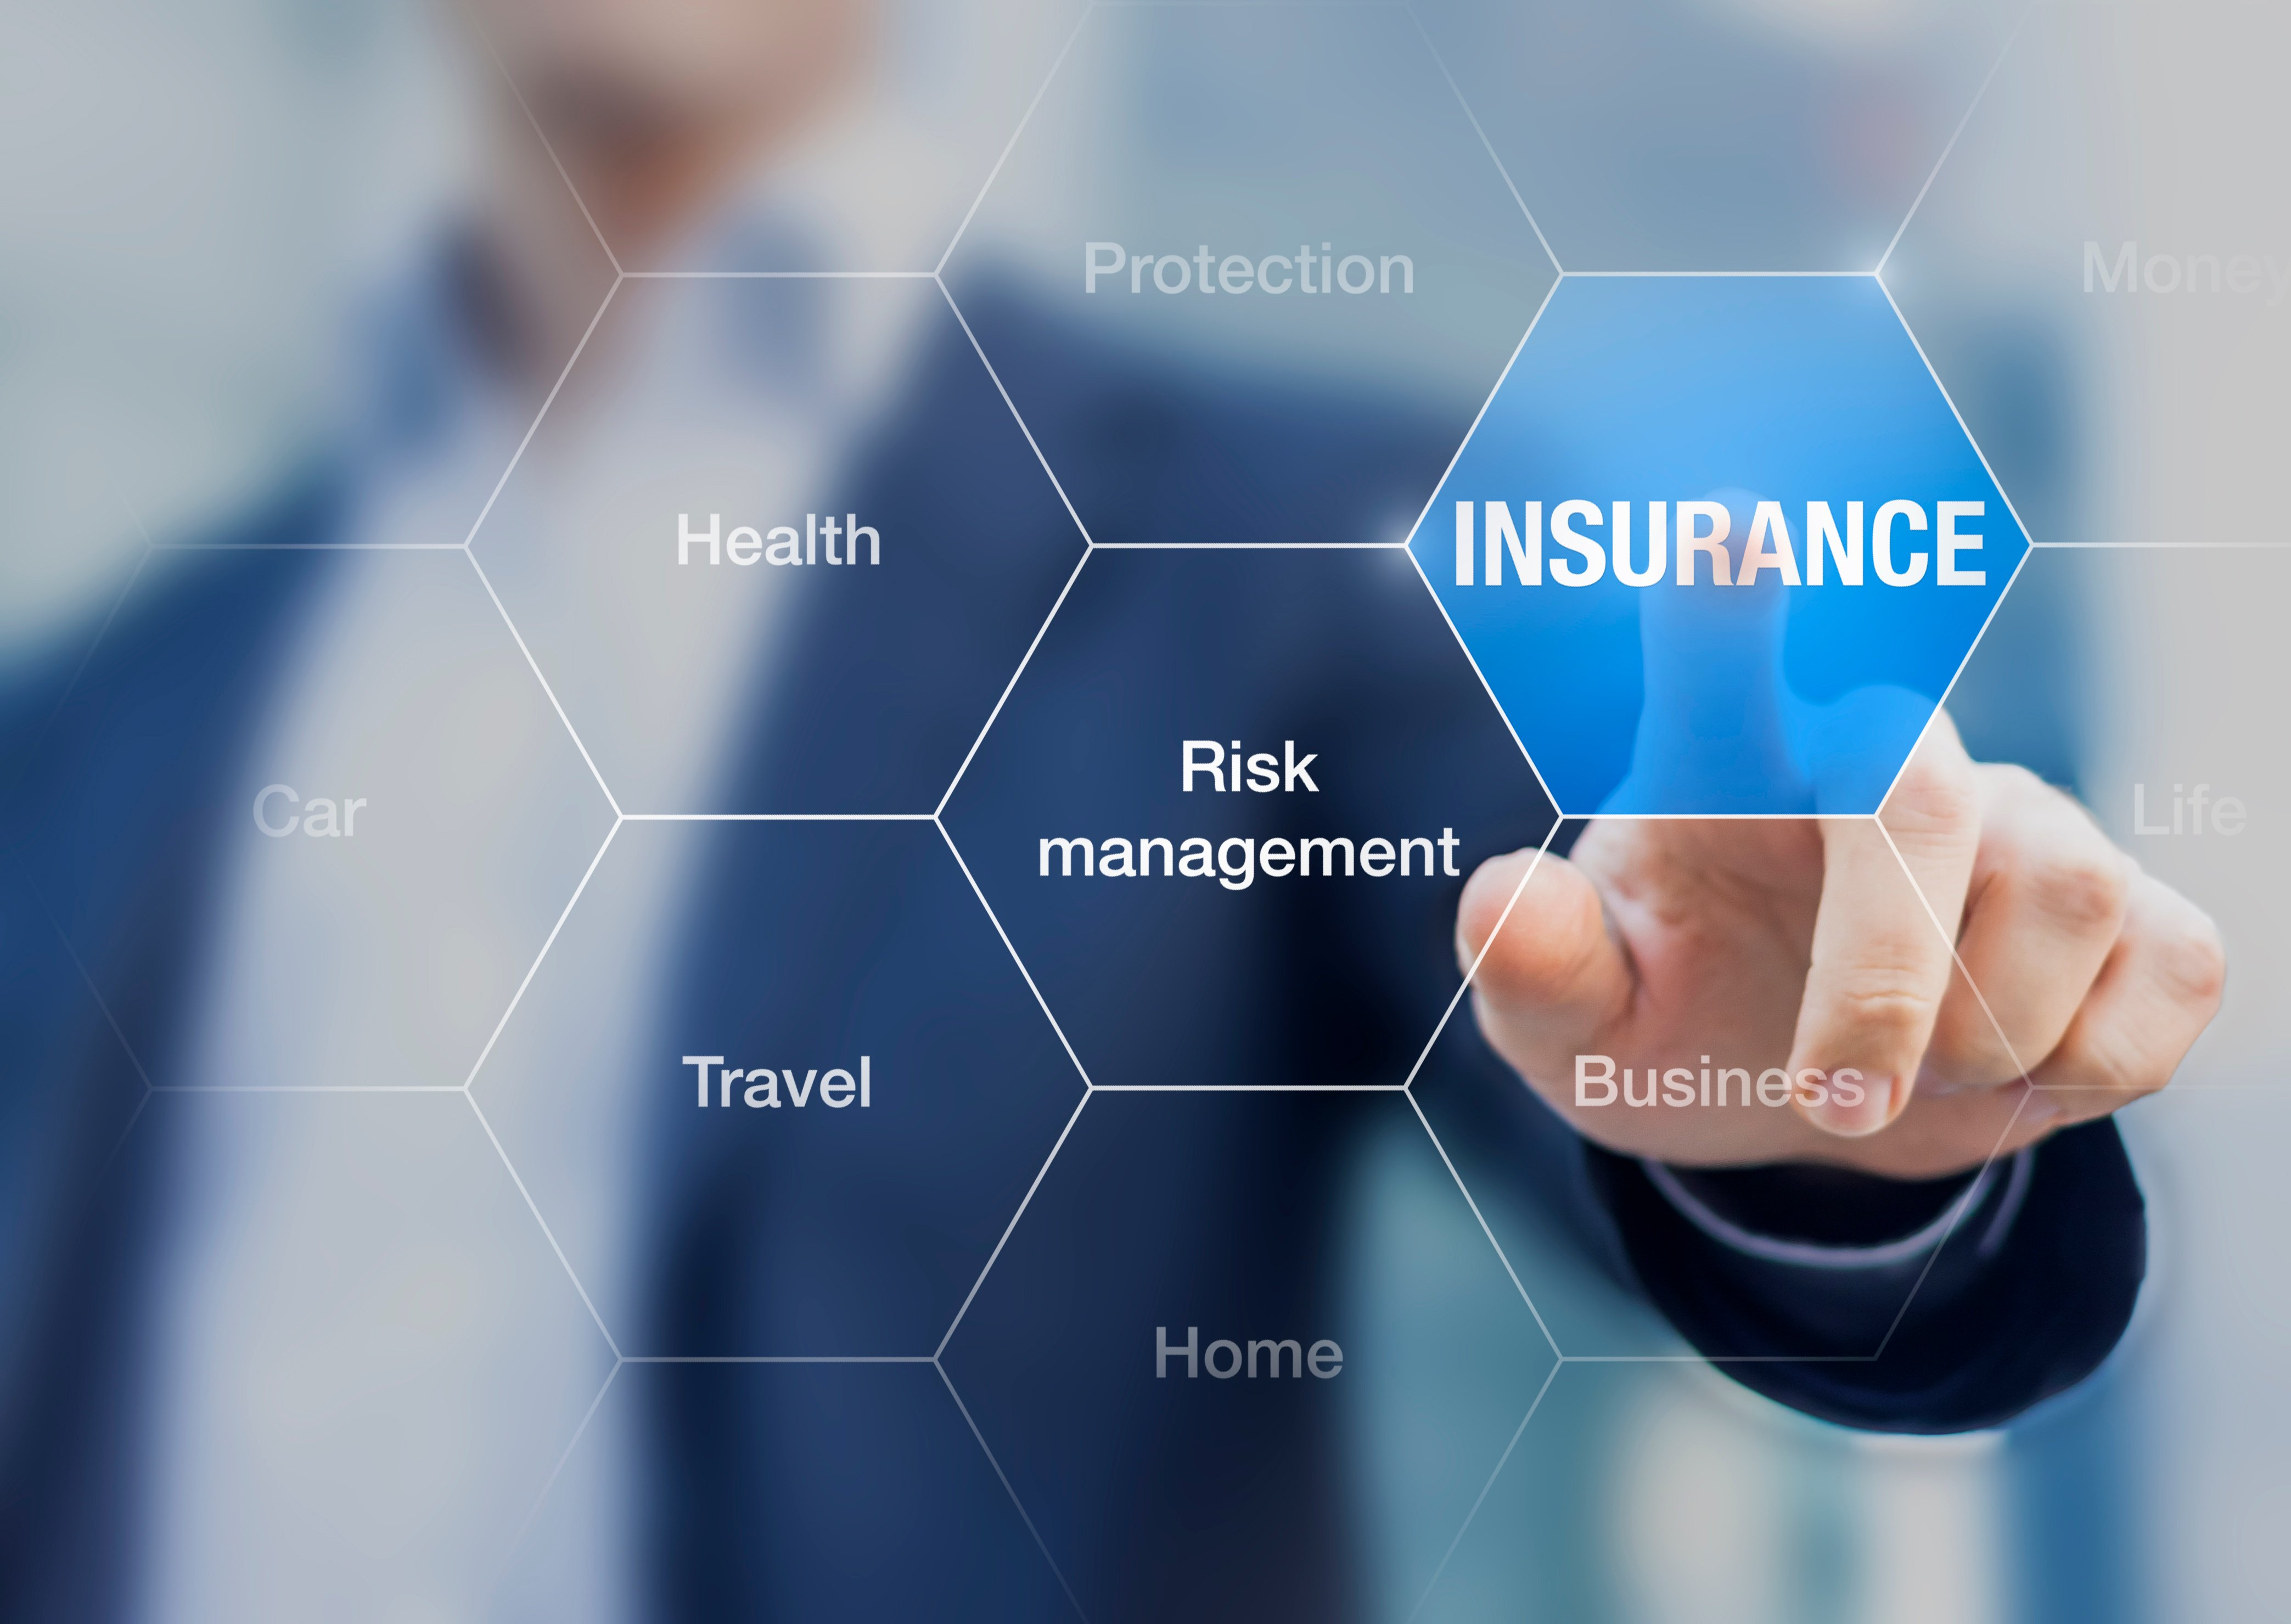 Professional Indemnity Insurance is the Best Choice For Work Related Insurance